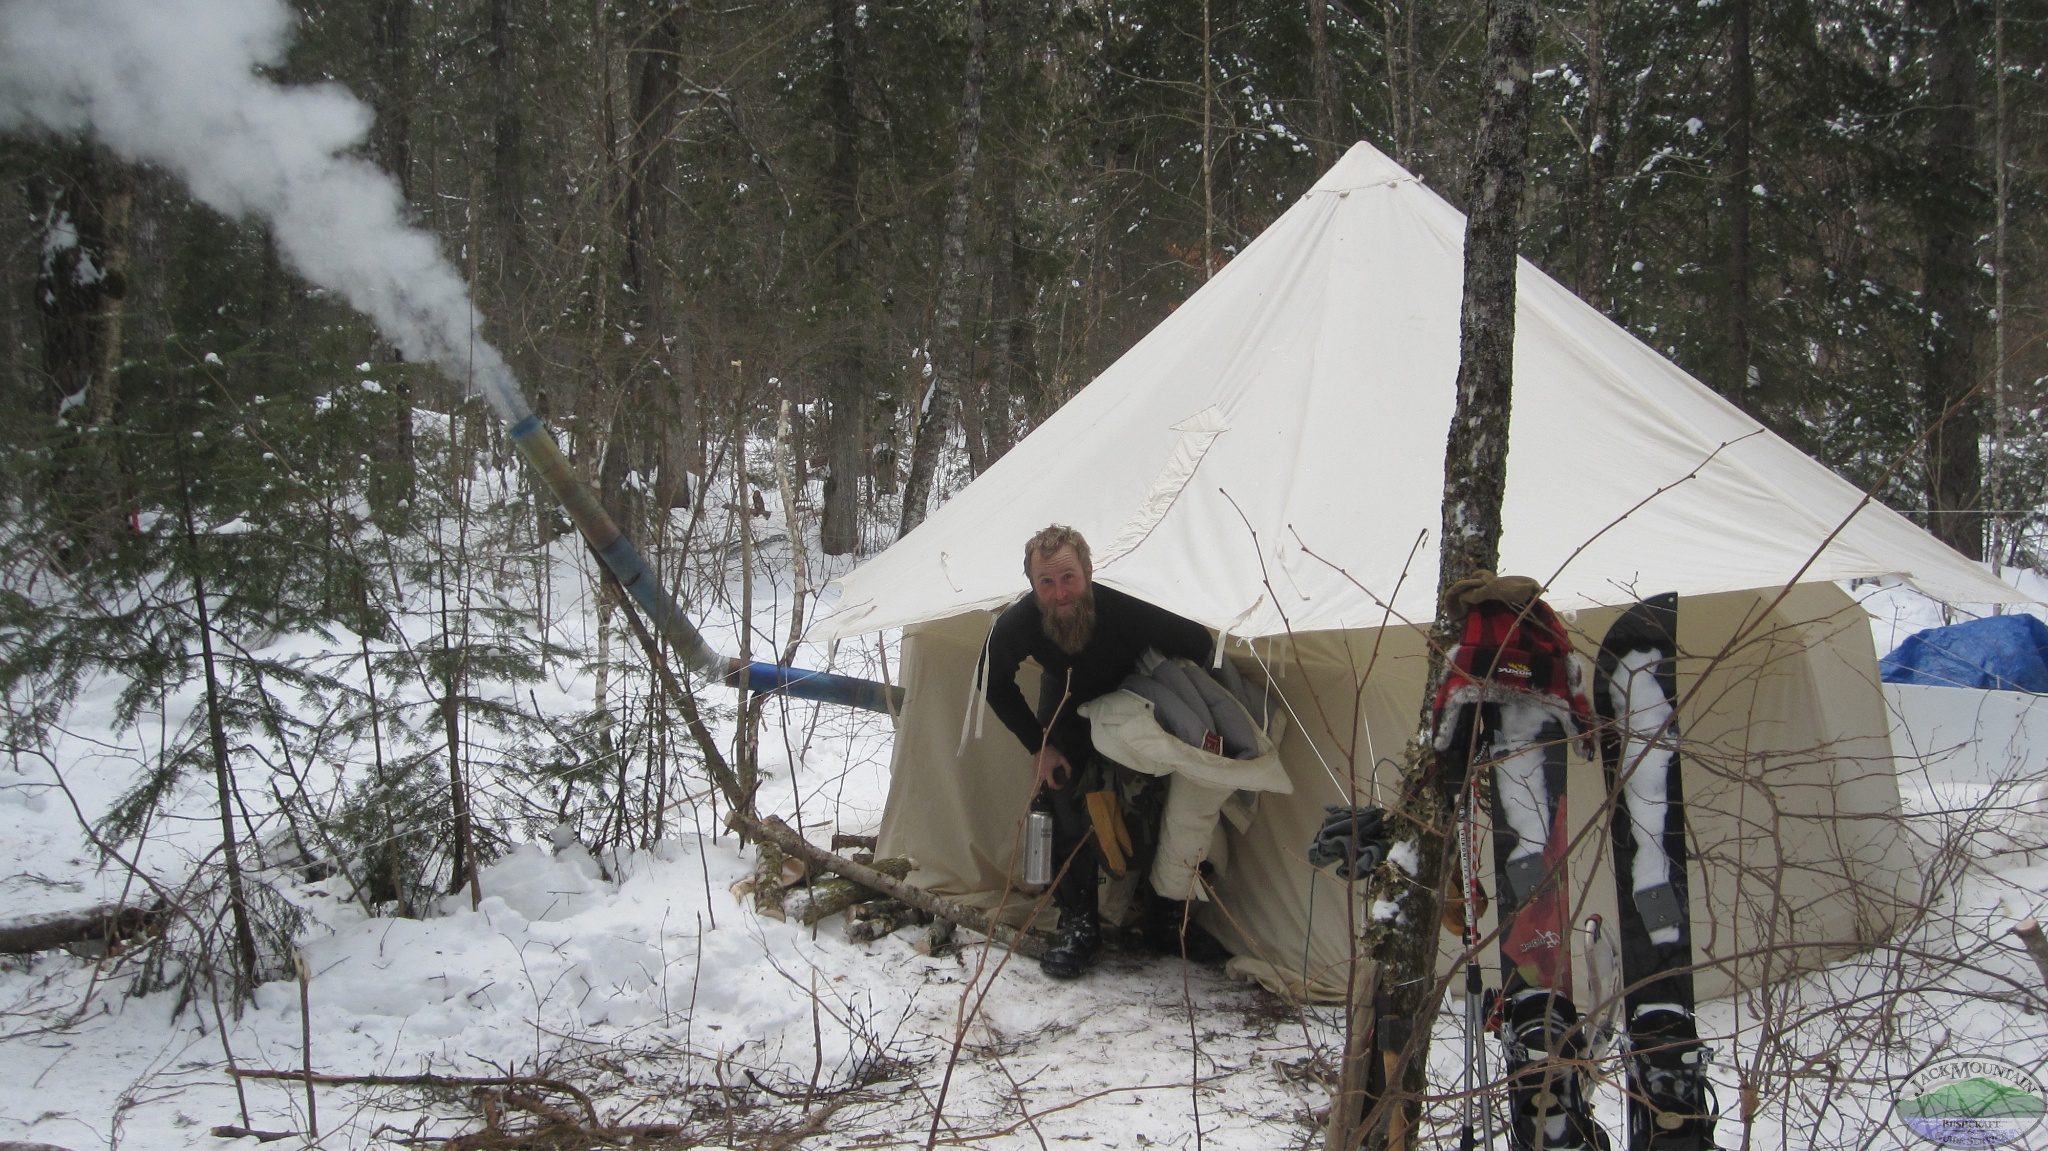 ... Hot Tent ... & Boreal Snowshoe Expedition | 2-Week Maine Winter Survival Course